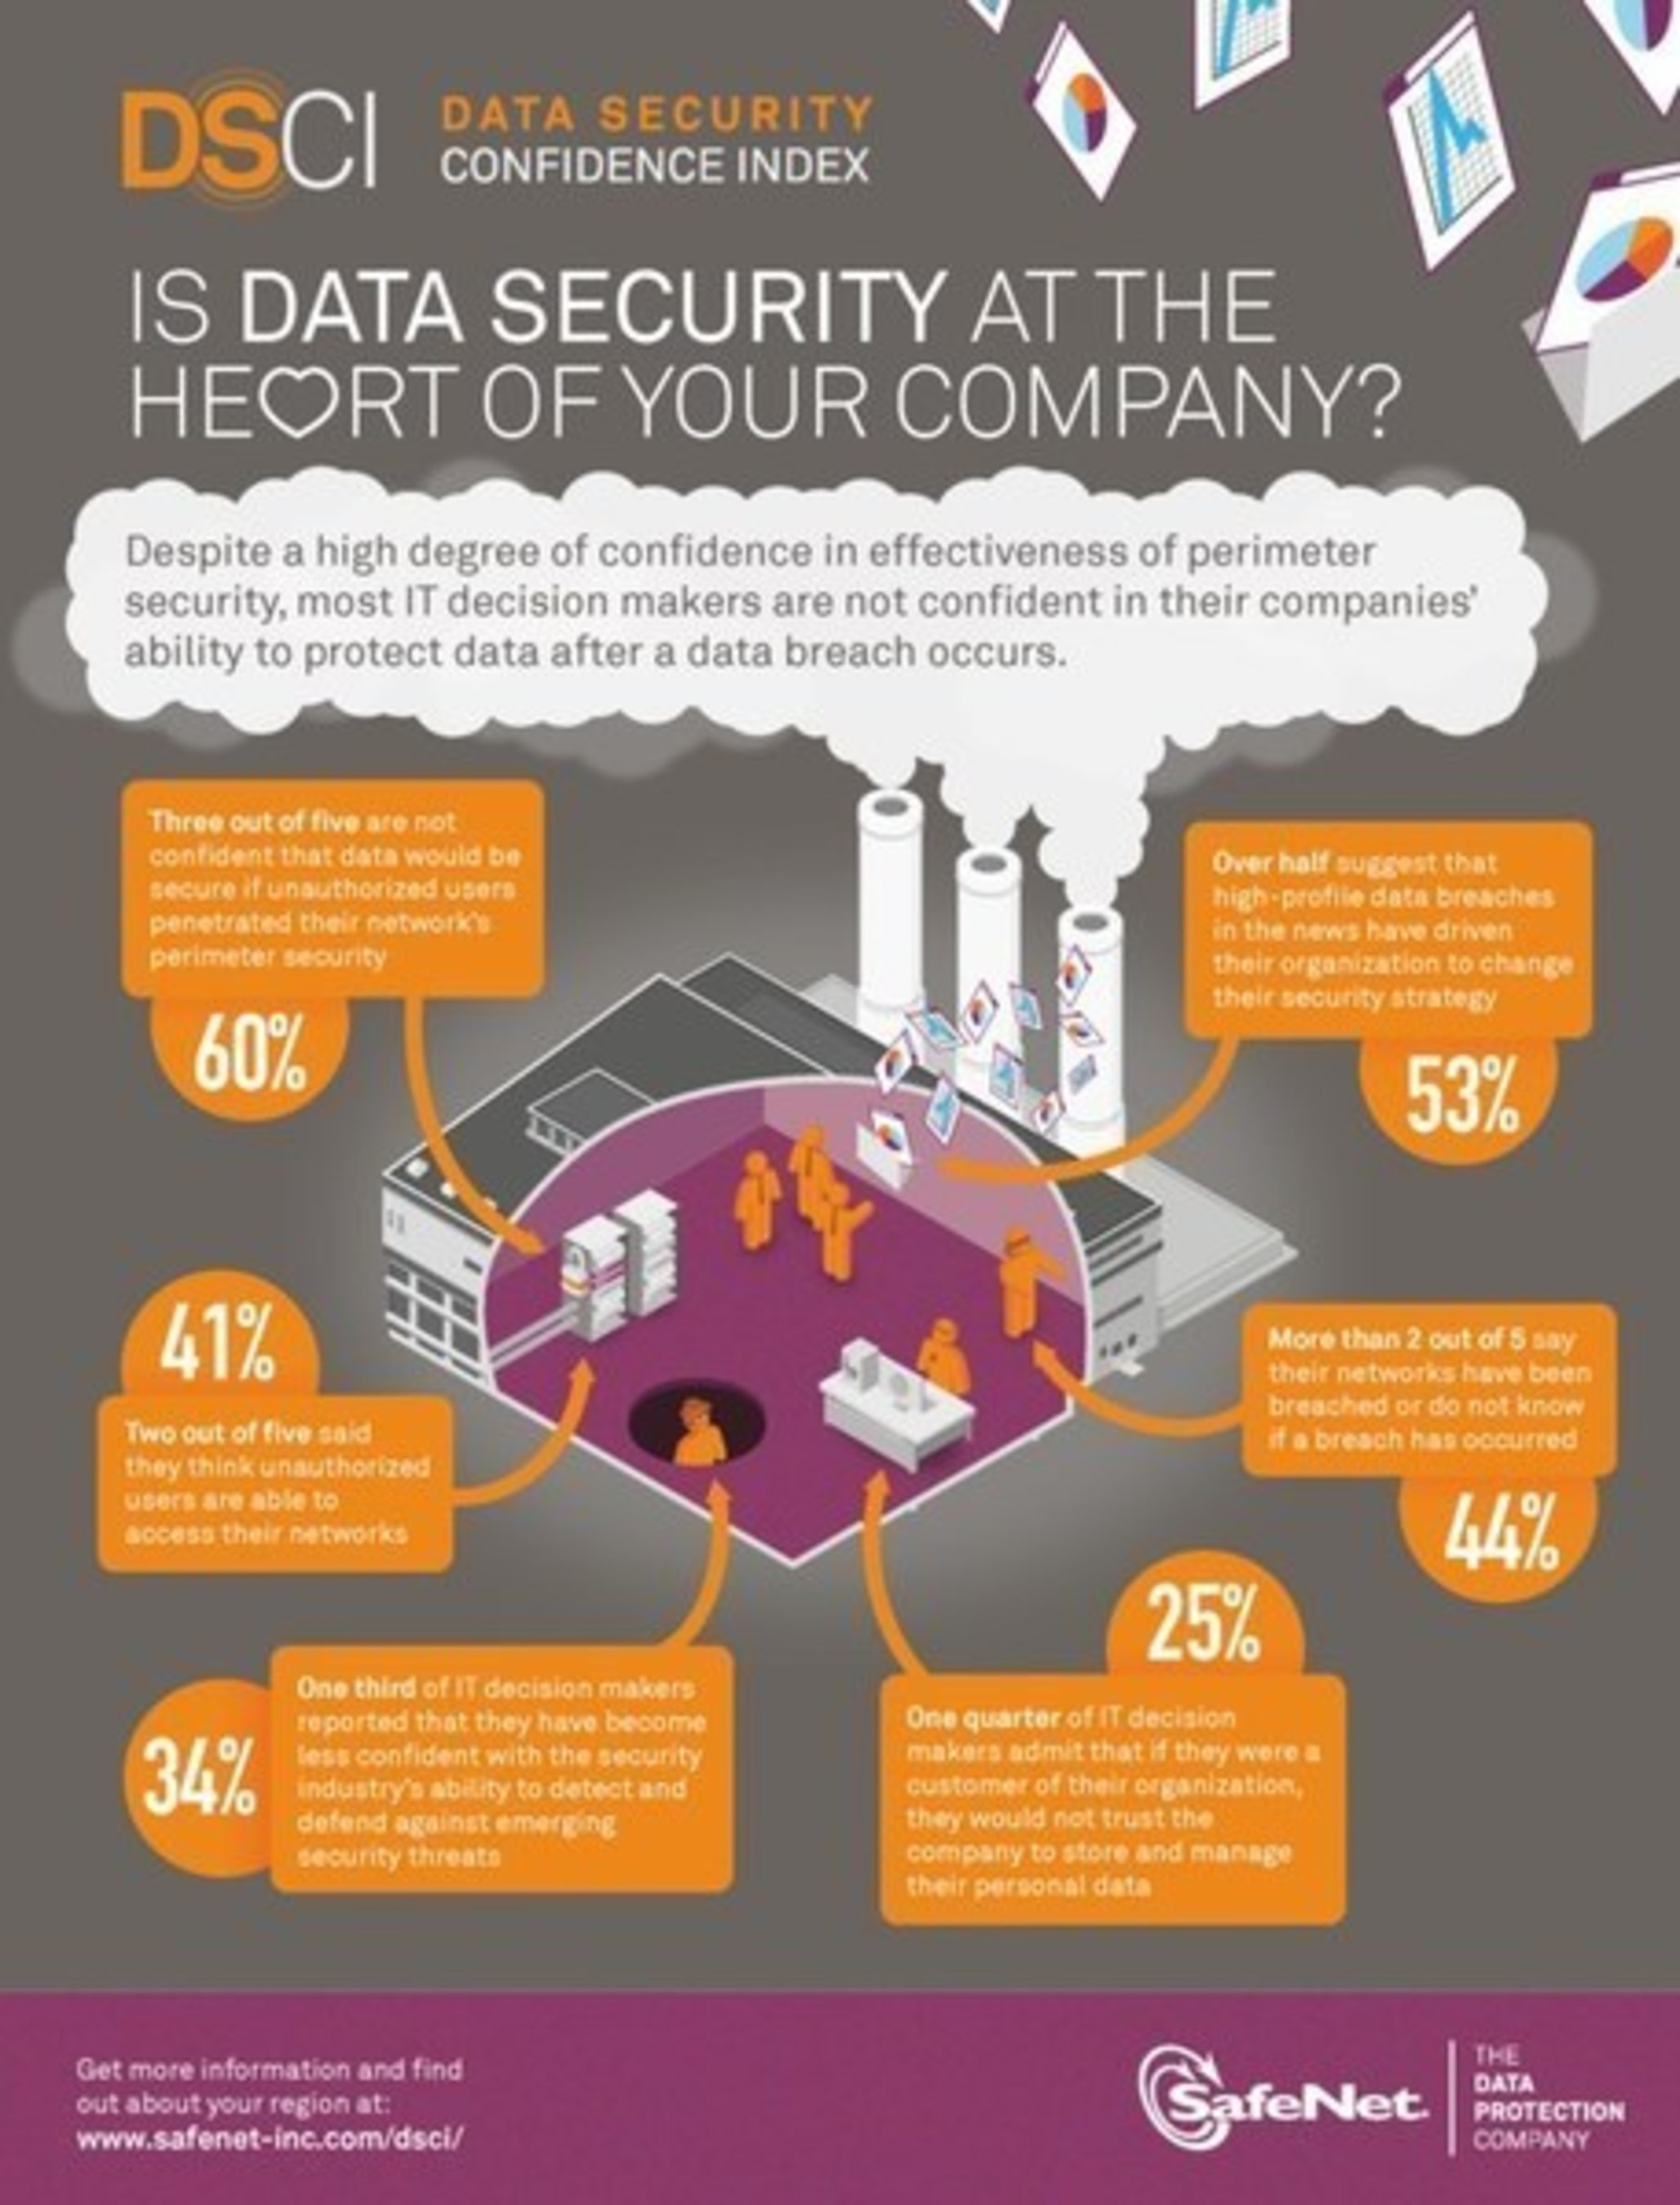 Is Data Security at the Heart of Your Company? Data Security Confidence Index by SafeNet (PRNewsFoto/SafeNet, ...